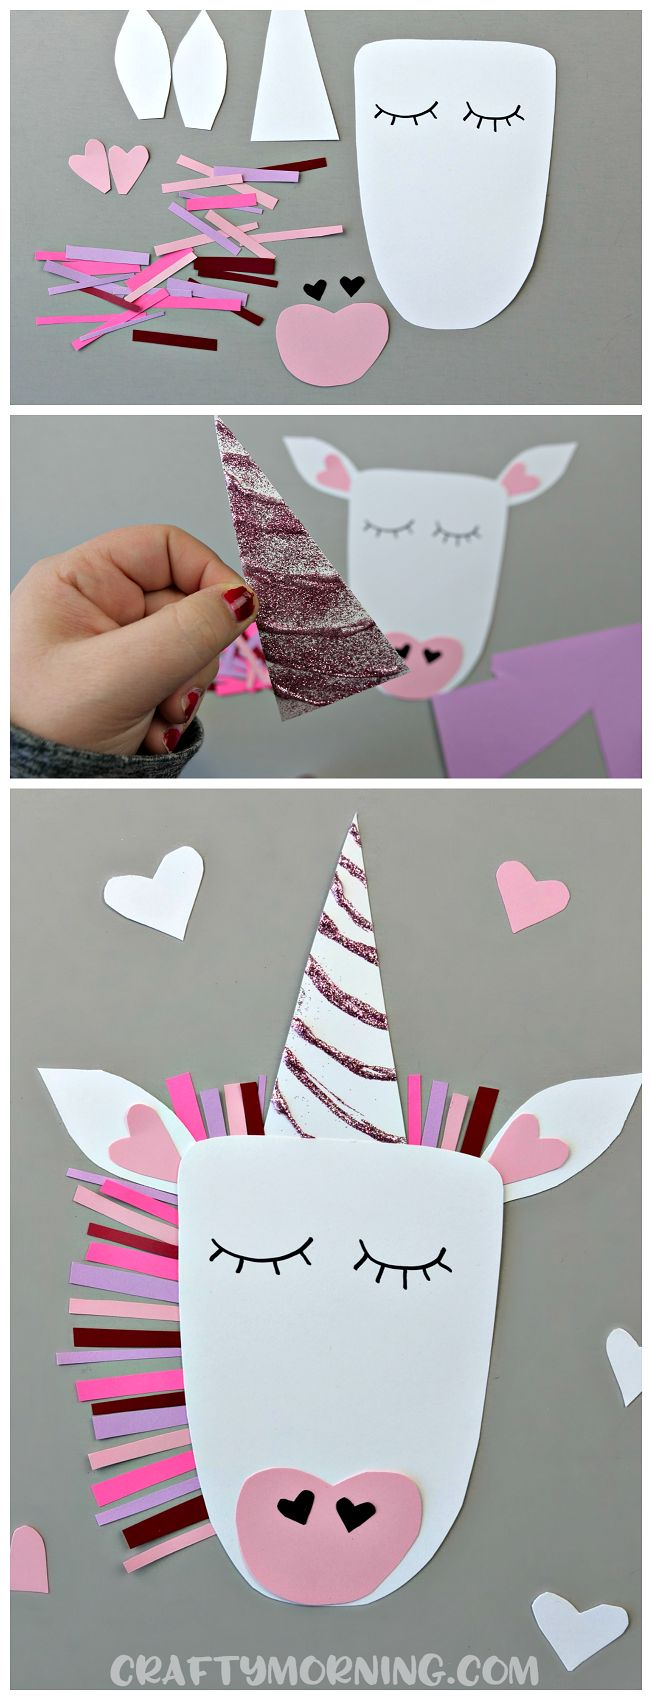 Make a unicorn valentine's day craft with your kids! Cute heart shaped animal art project to make!